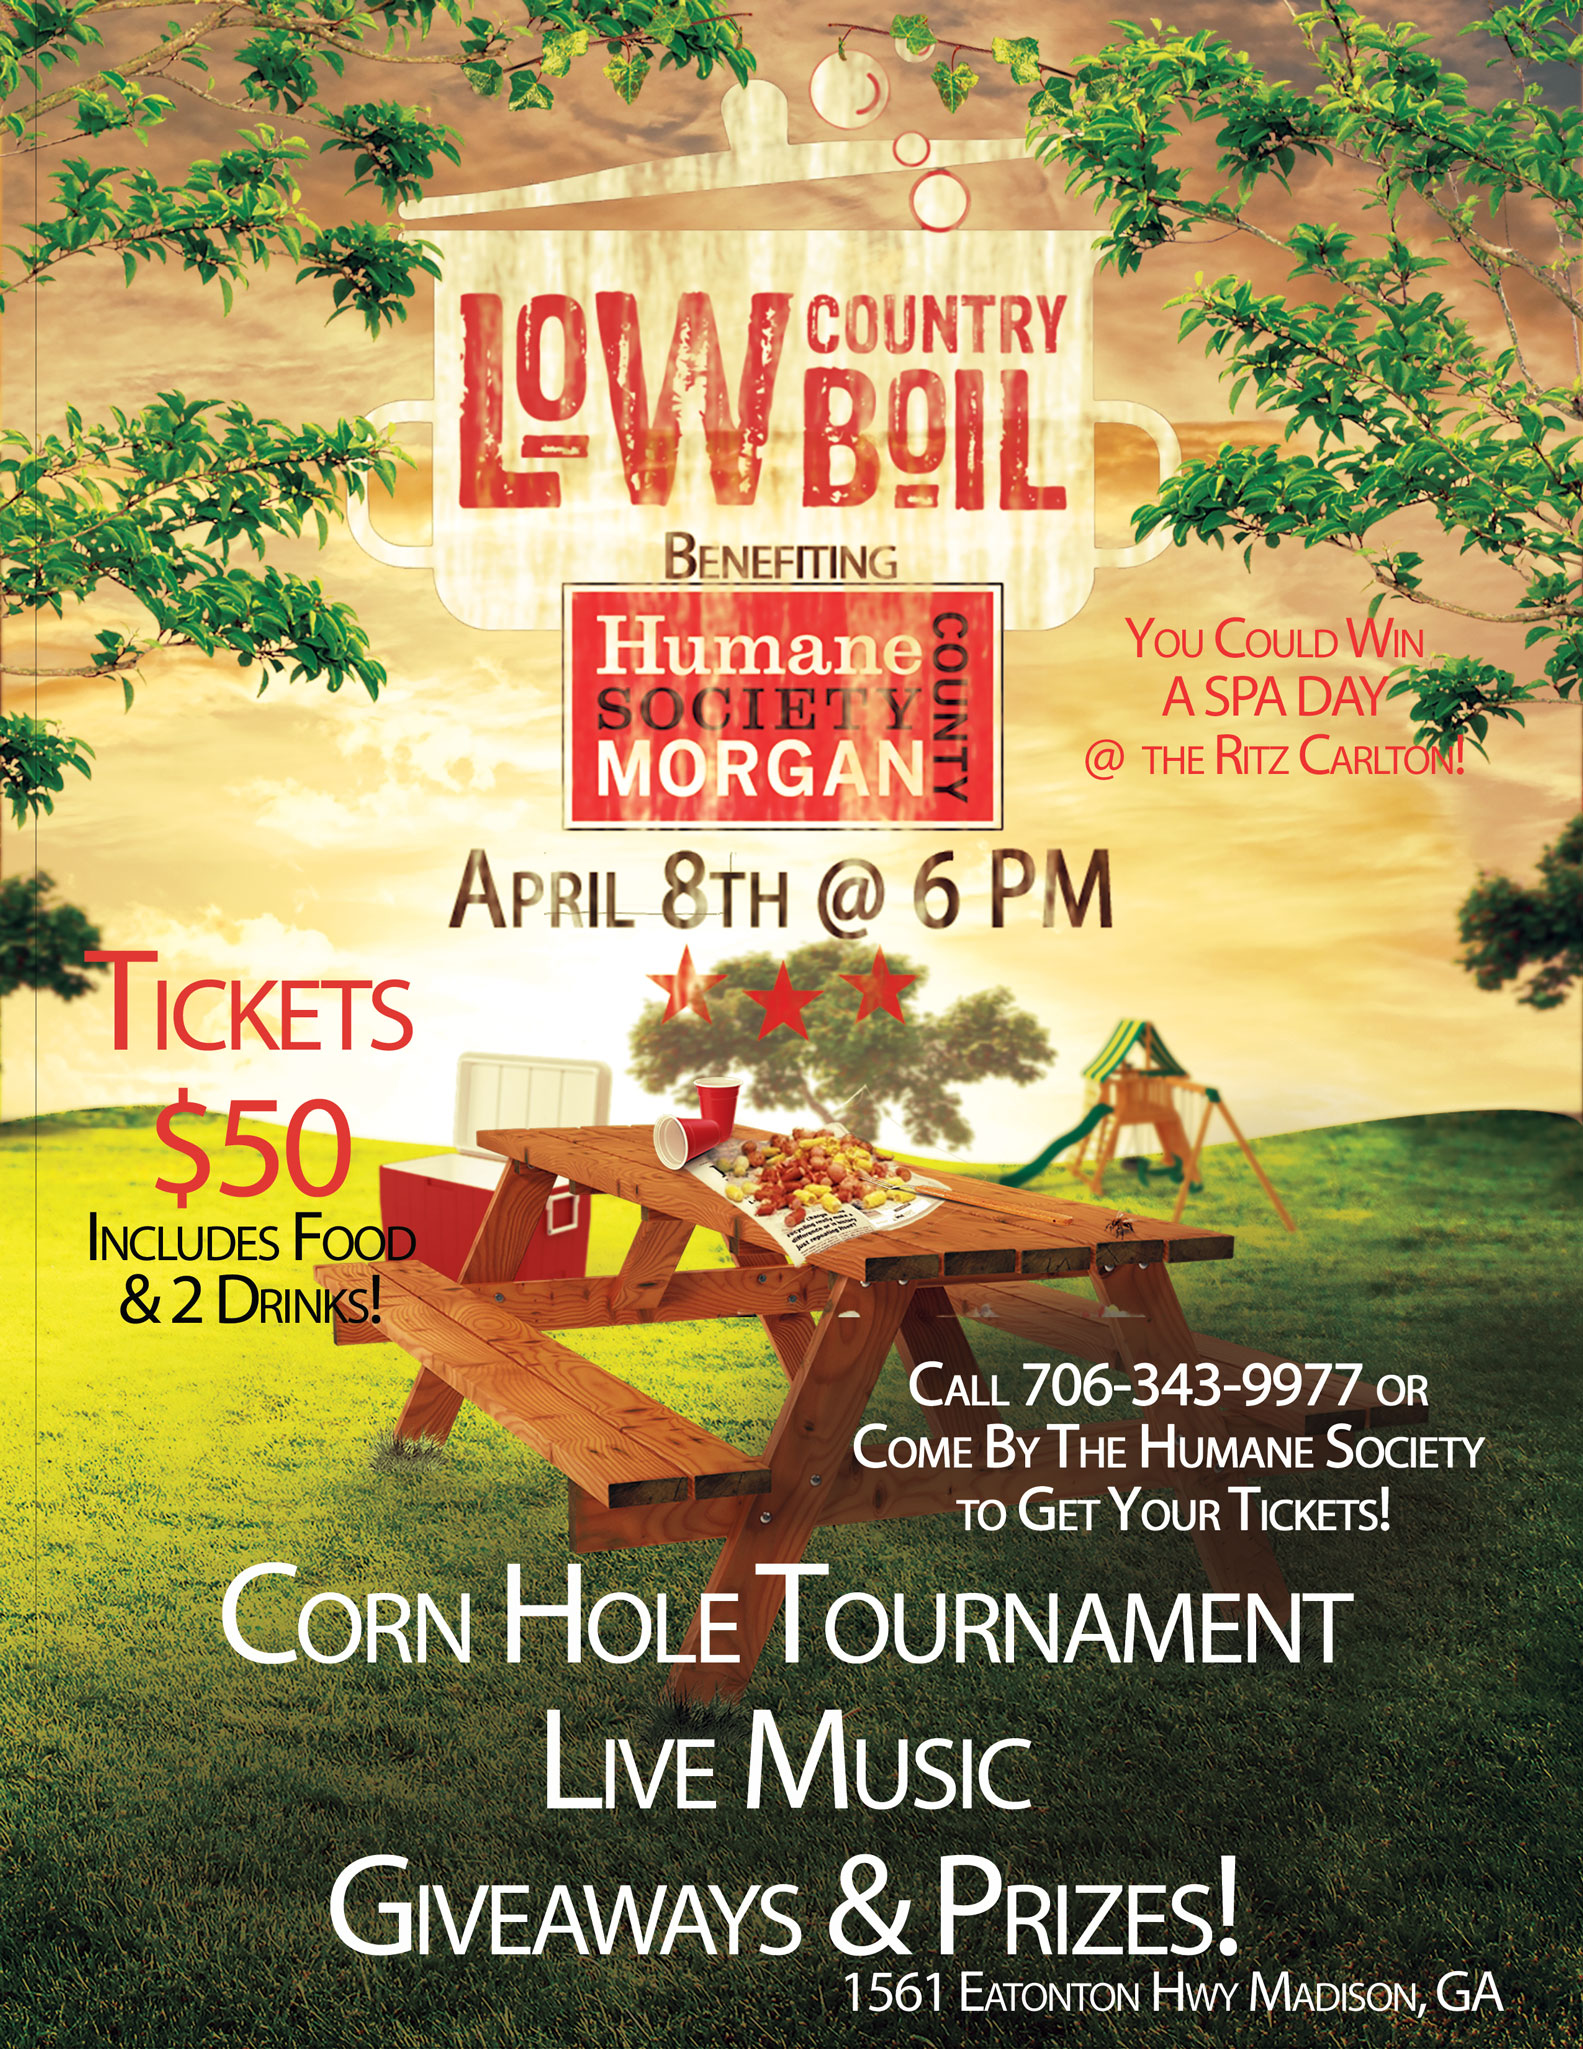 lowcountryboil flyer template humane society of morgan county